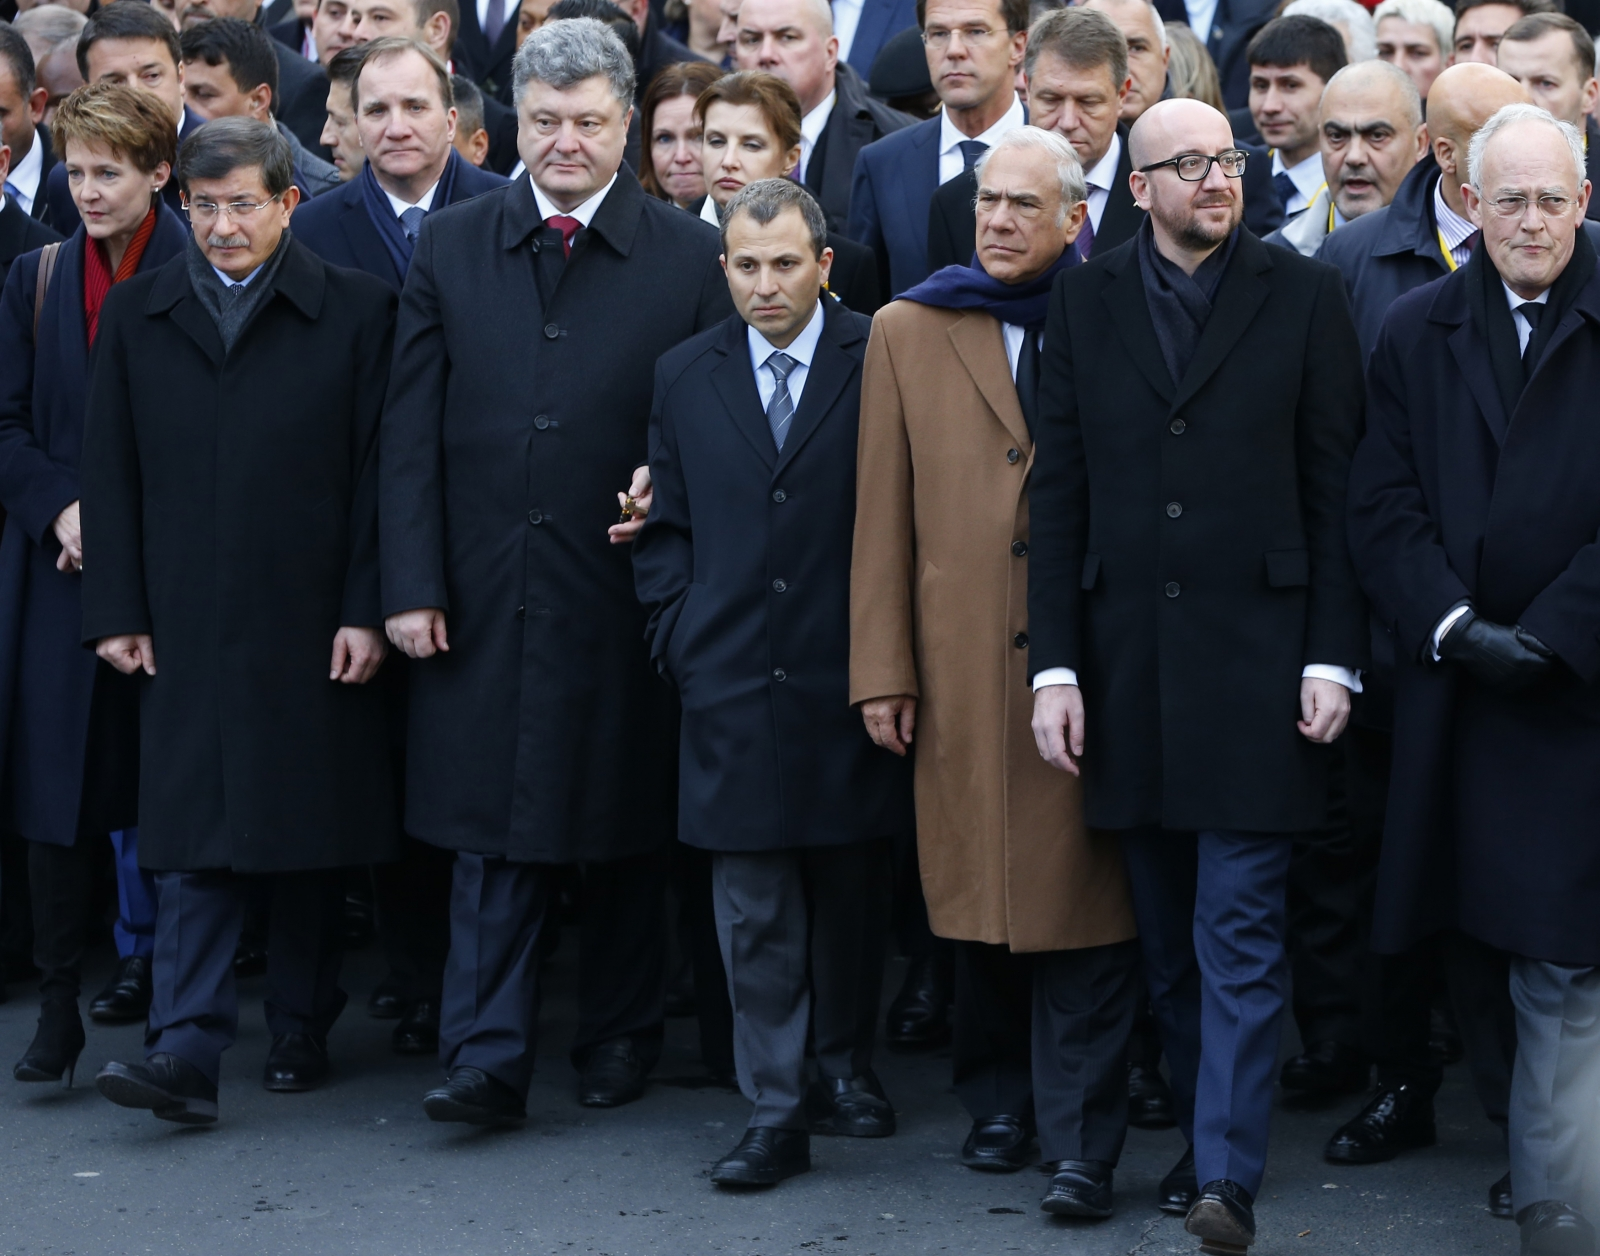 Switzerland's President Simonetta Sommaruga (L), Turkey's Prime Minister Ahmet Davutoglu (2ndL), Ukraine's President Petro Poroshenko (3rdL), Organization for Economic Co-operation and Development (OECD) Secretary-General Angel Gurria (3rdR), Belgian P